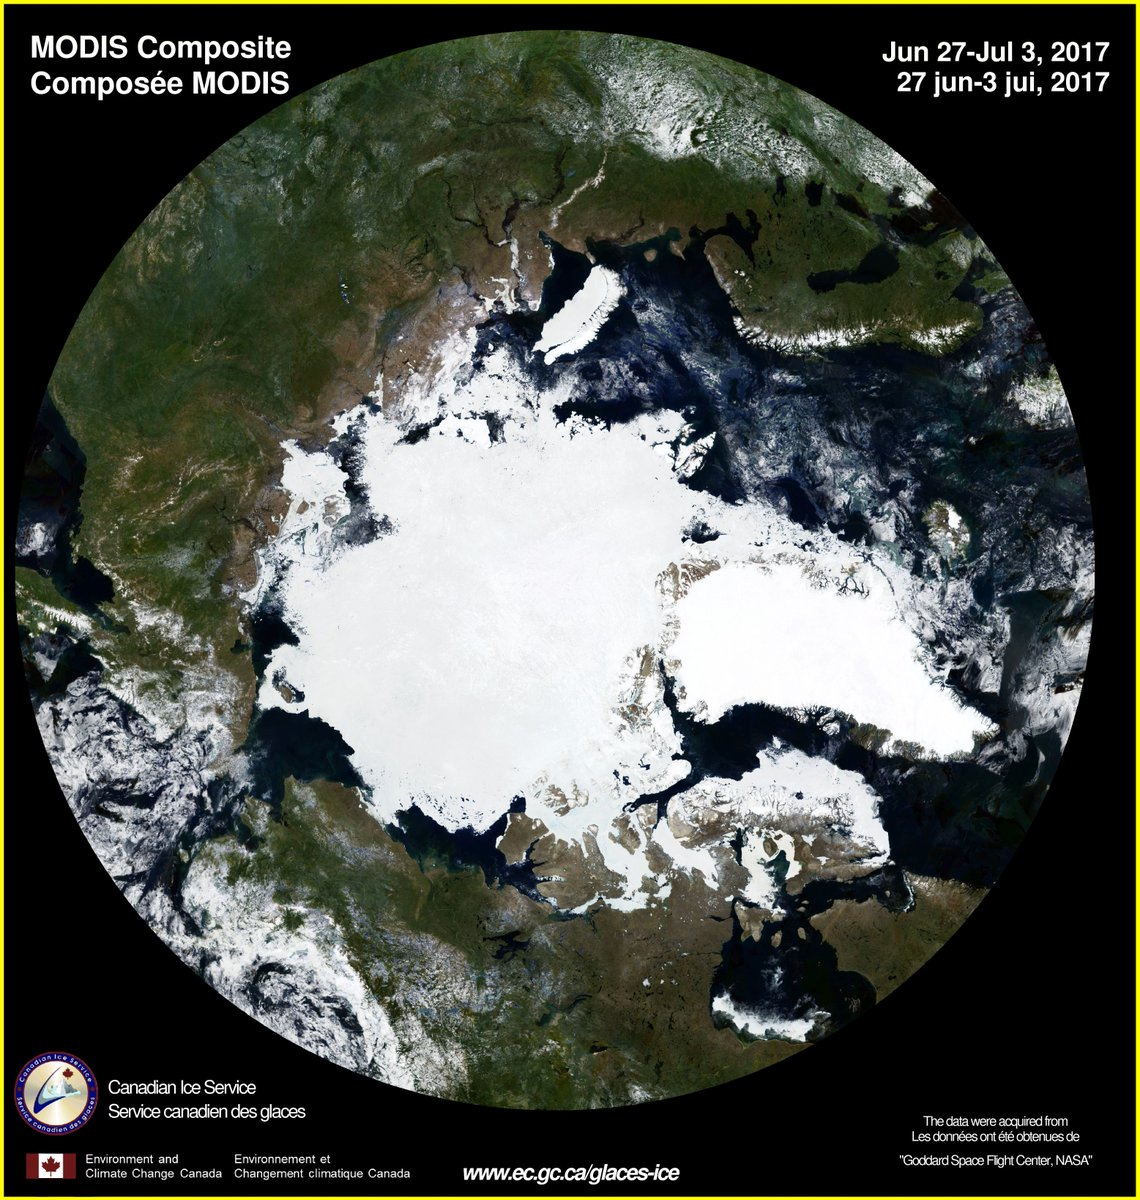 MODIS composite from June 27-July 3 time period showing snow/ice over Arctic region with Greenland in the middle, right portion of the image; courtesy NASA/Goddard